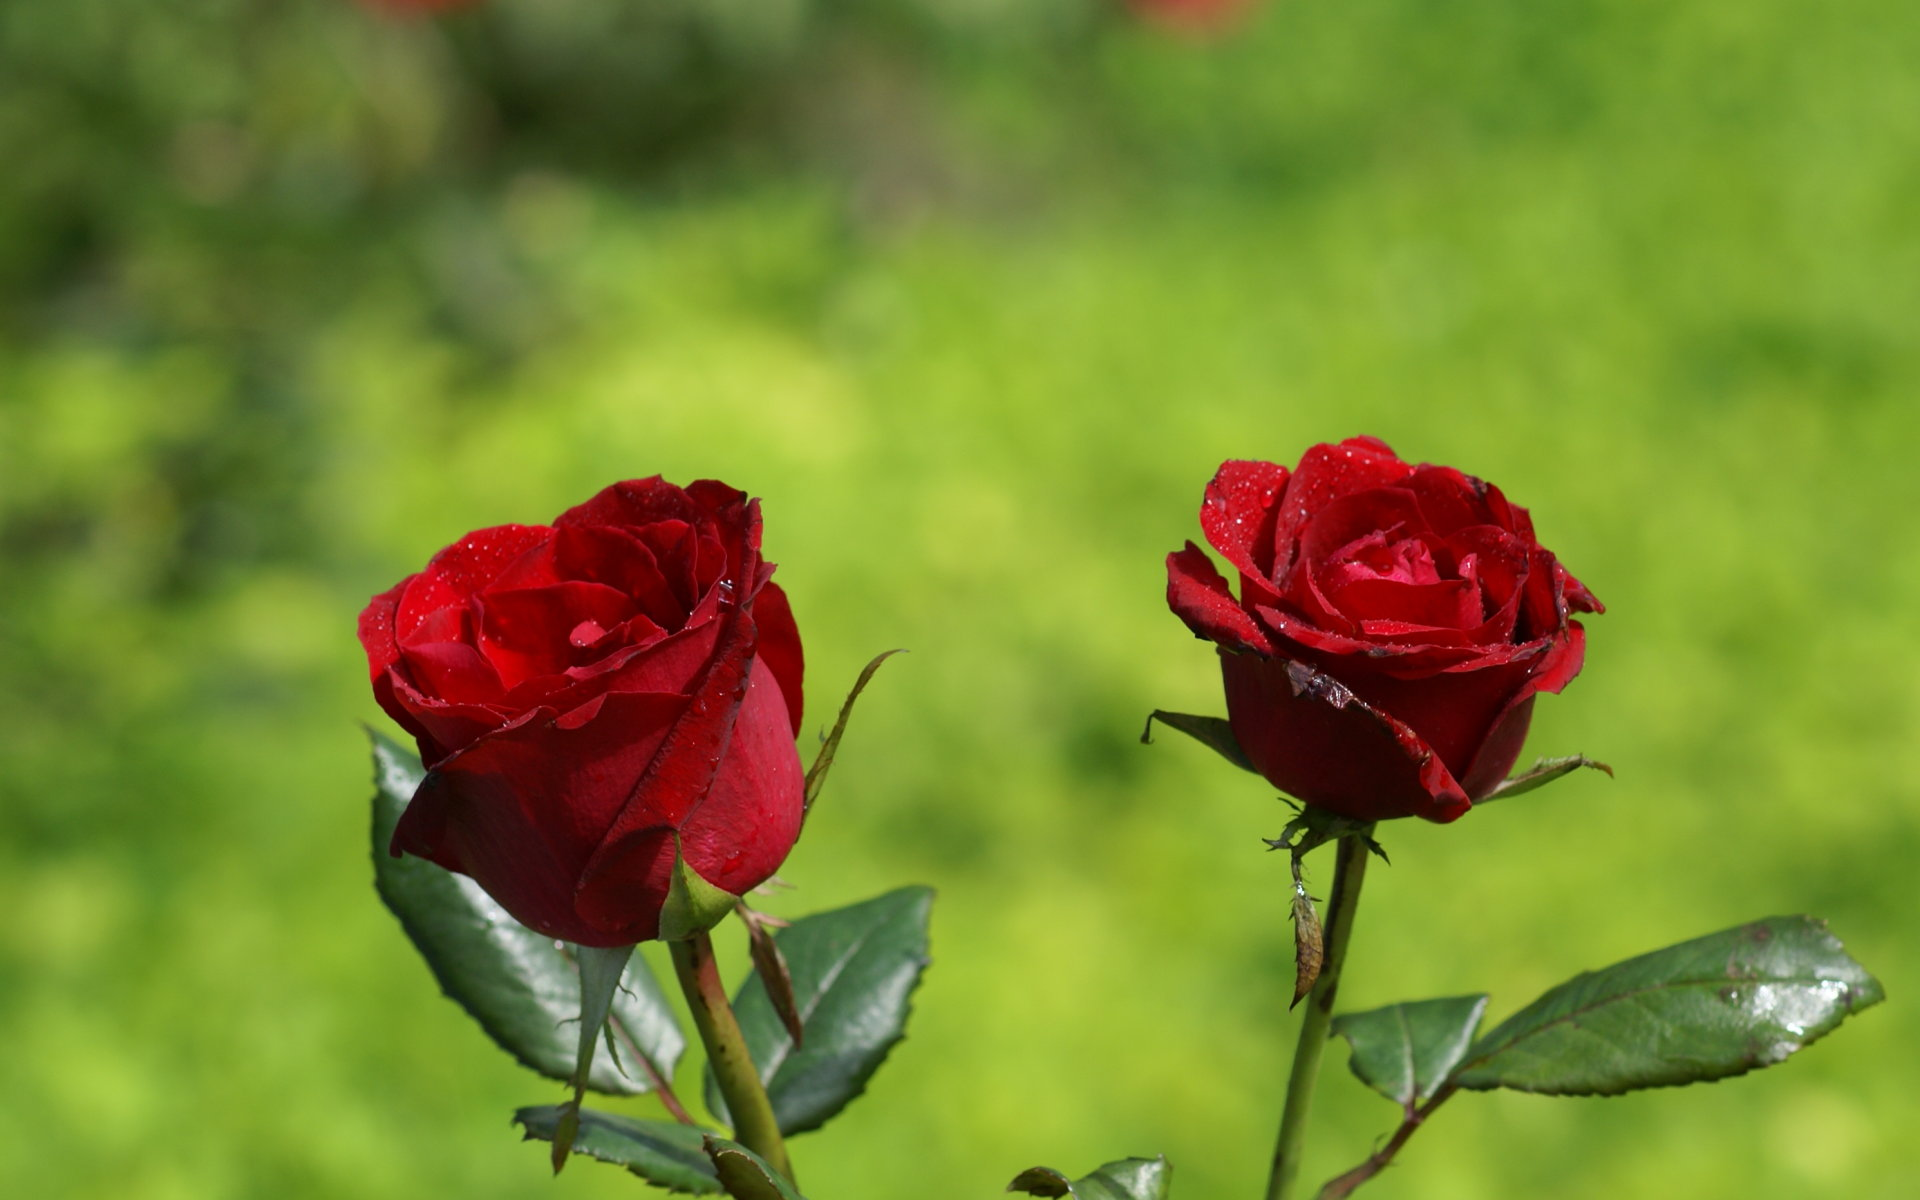 Pictures of two red roses flowers for wallpaper hd - Rose flower images full size hd ...